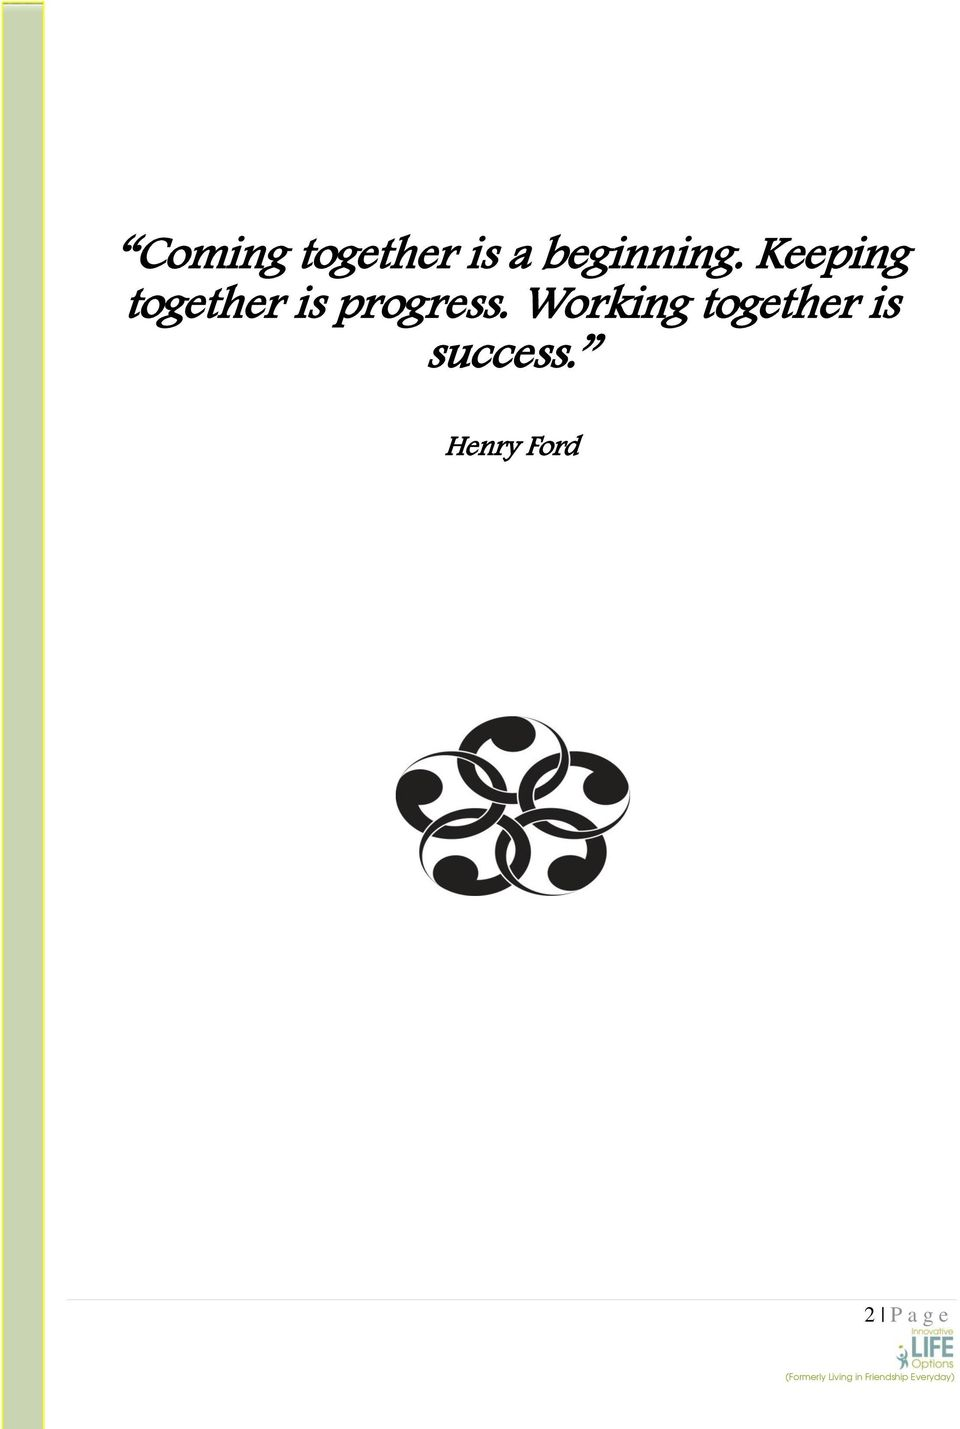 Keeping together is